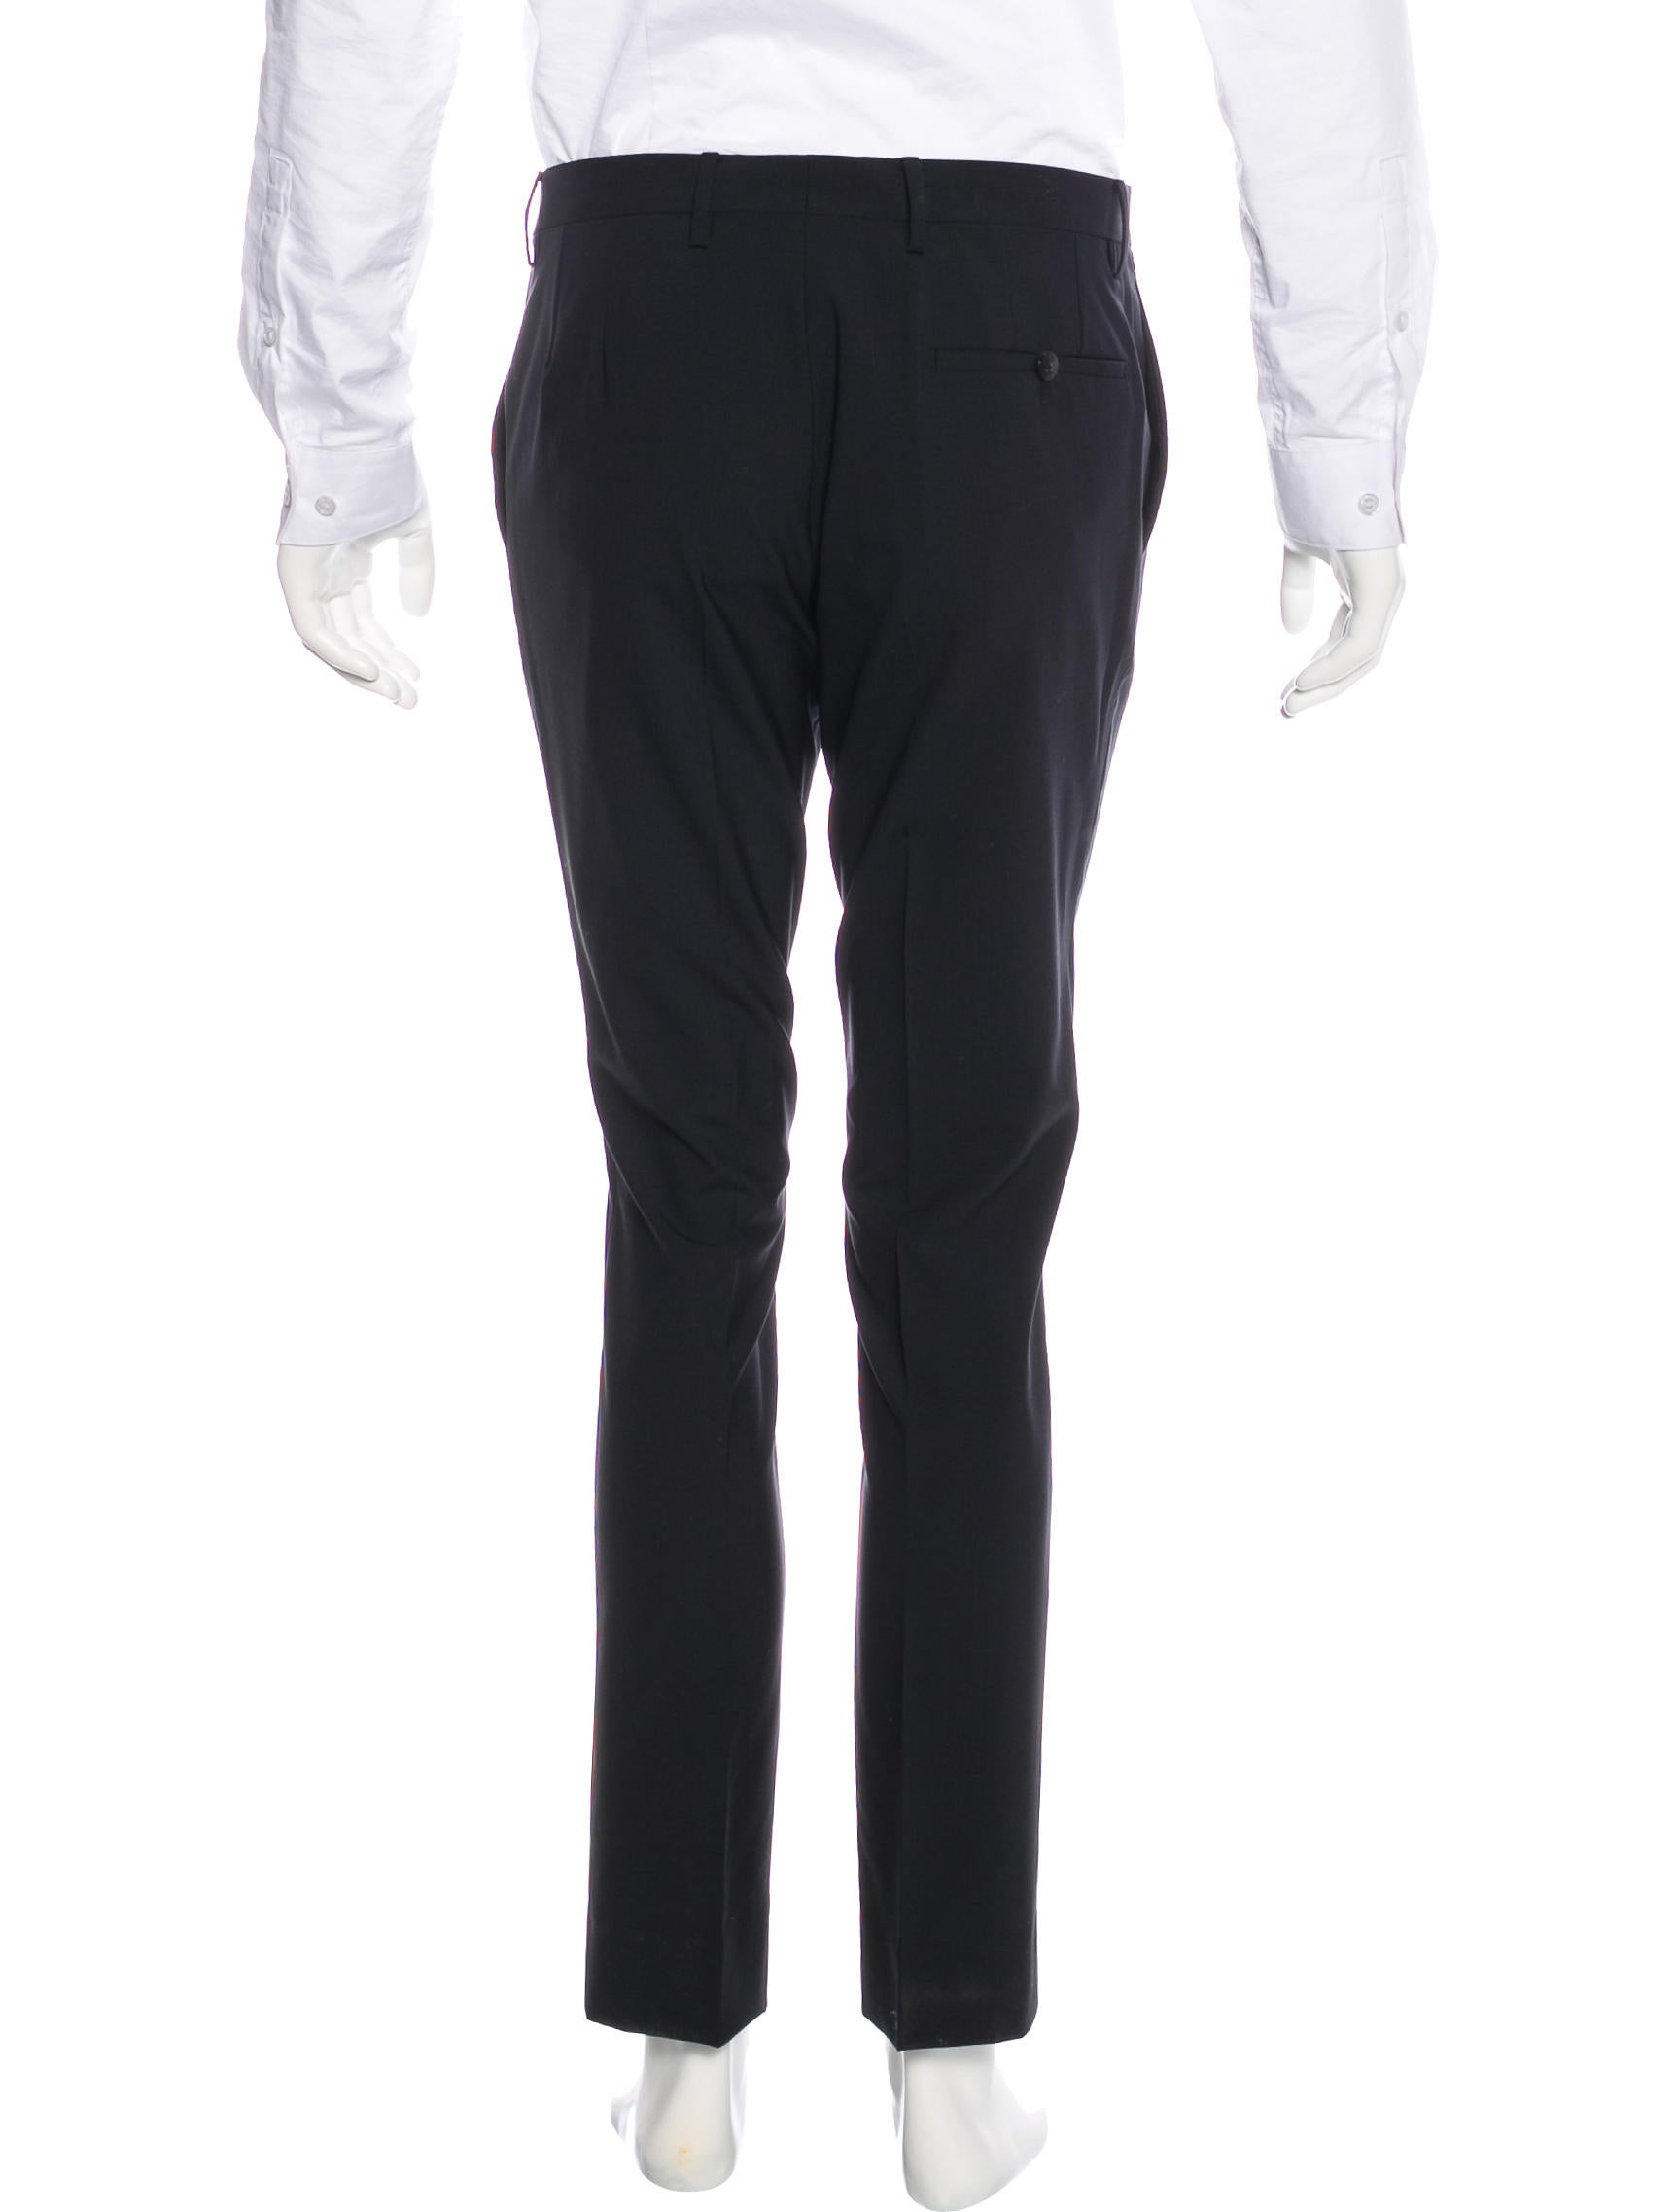 Wool Dress Pants: r0nd.tk - Your Online Dress Pants Store! Get 5% in rewards with Club O!